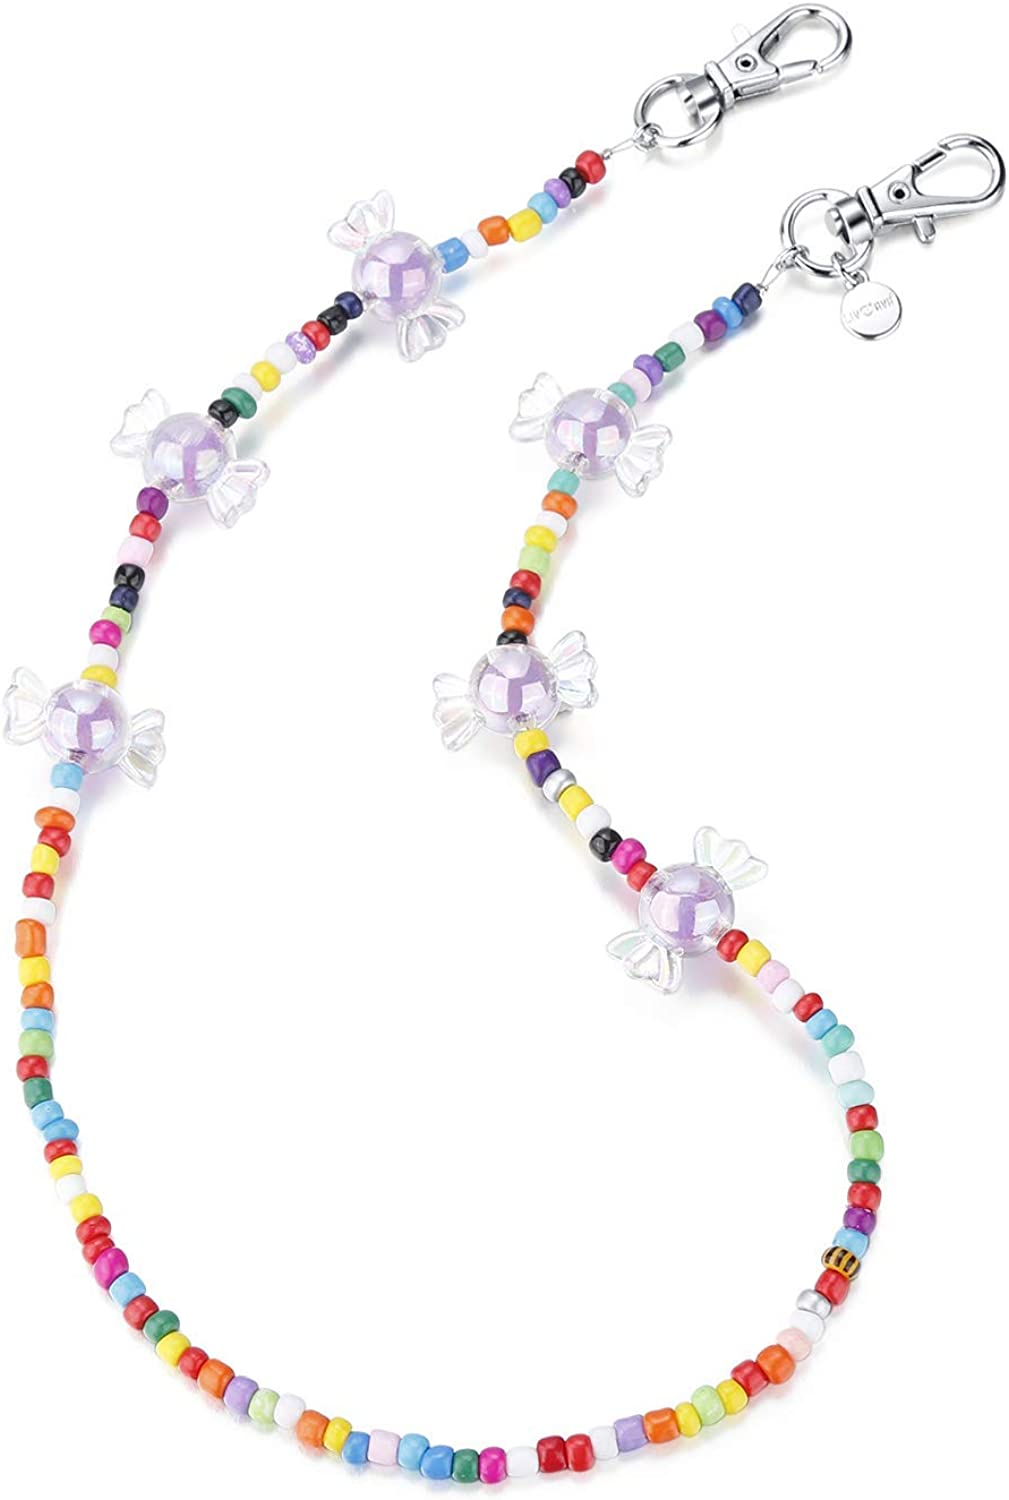 Liv Ava Mask Chain Bead Stylish Eyeglass Necklace Sale special price Topics on TV Colorful